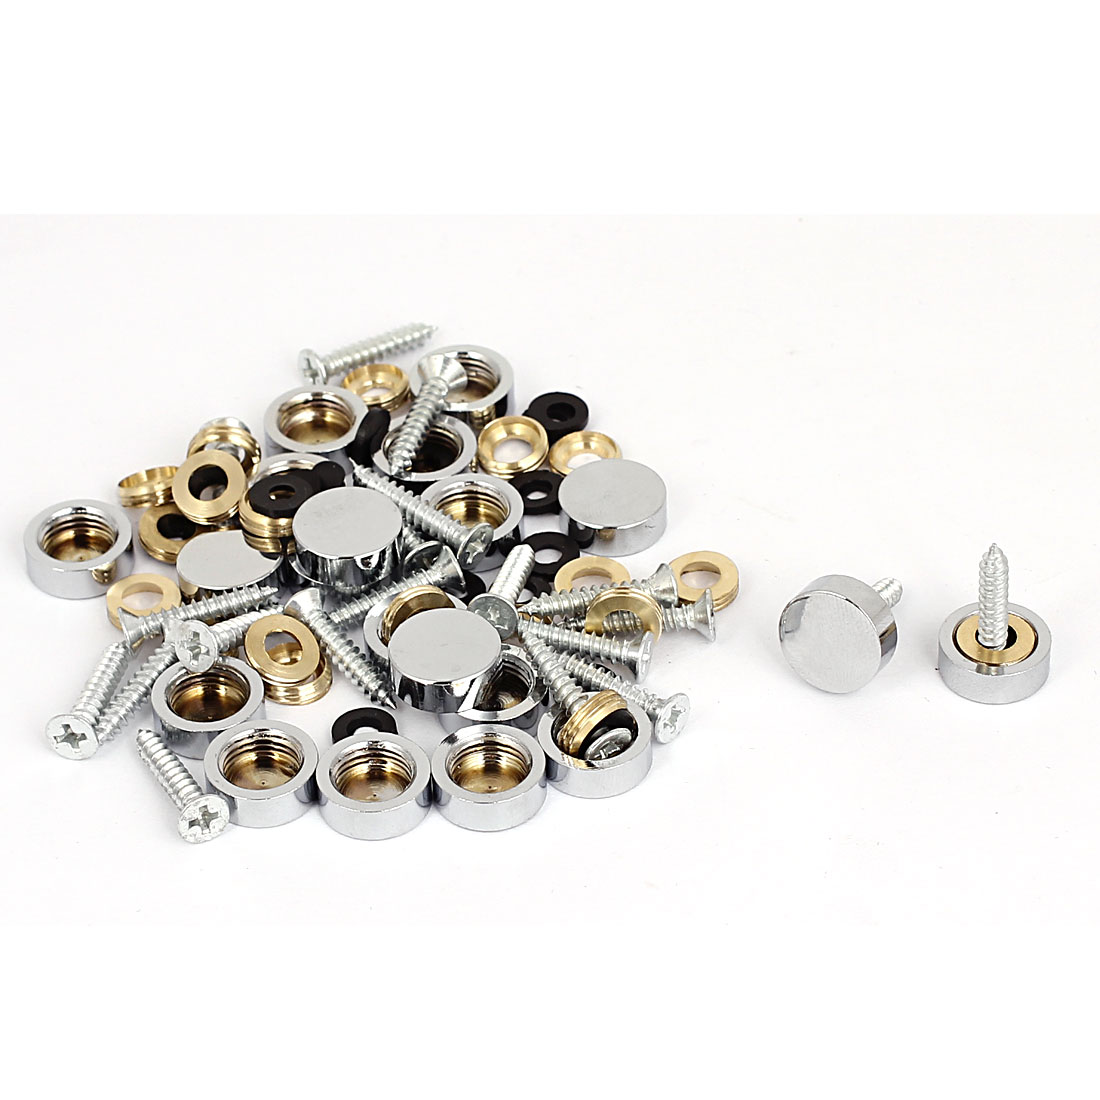 14mm Dia Advertising Glass Tea Table Decorative Metal Mirror Screw Nails 20Pcs